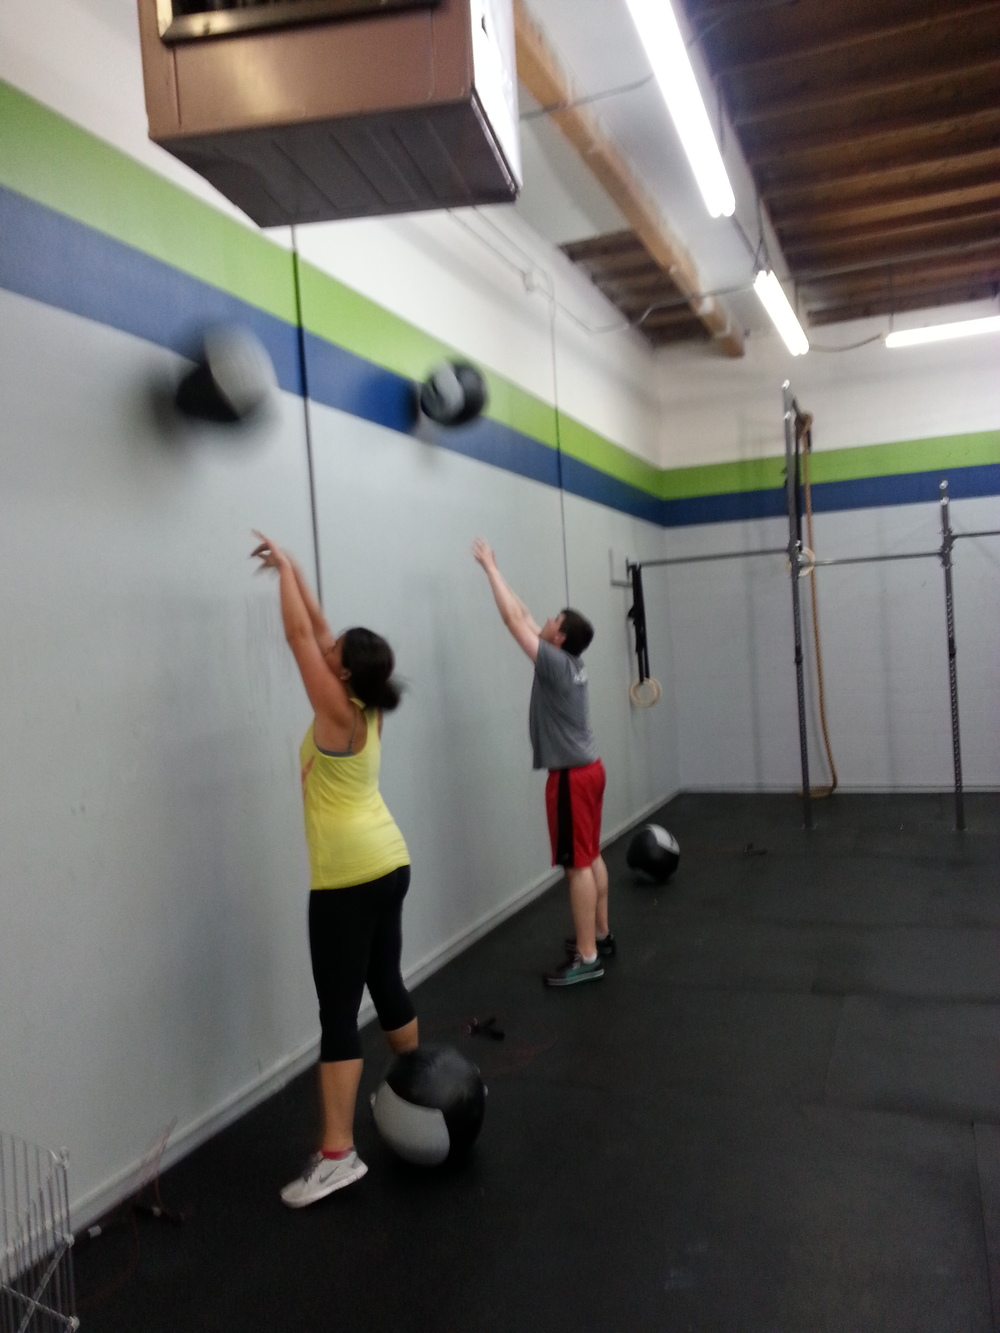 Ivy and Phil tossing up their wall balls at our 6pm class!